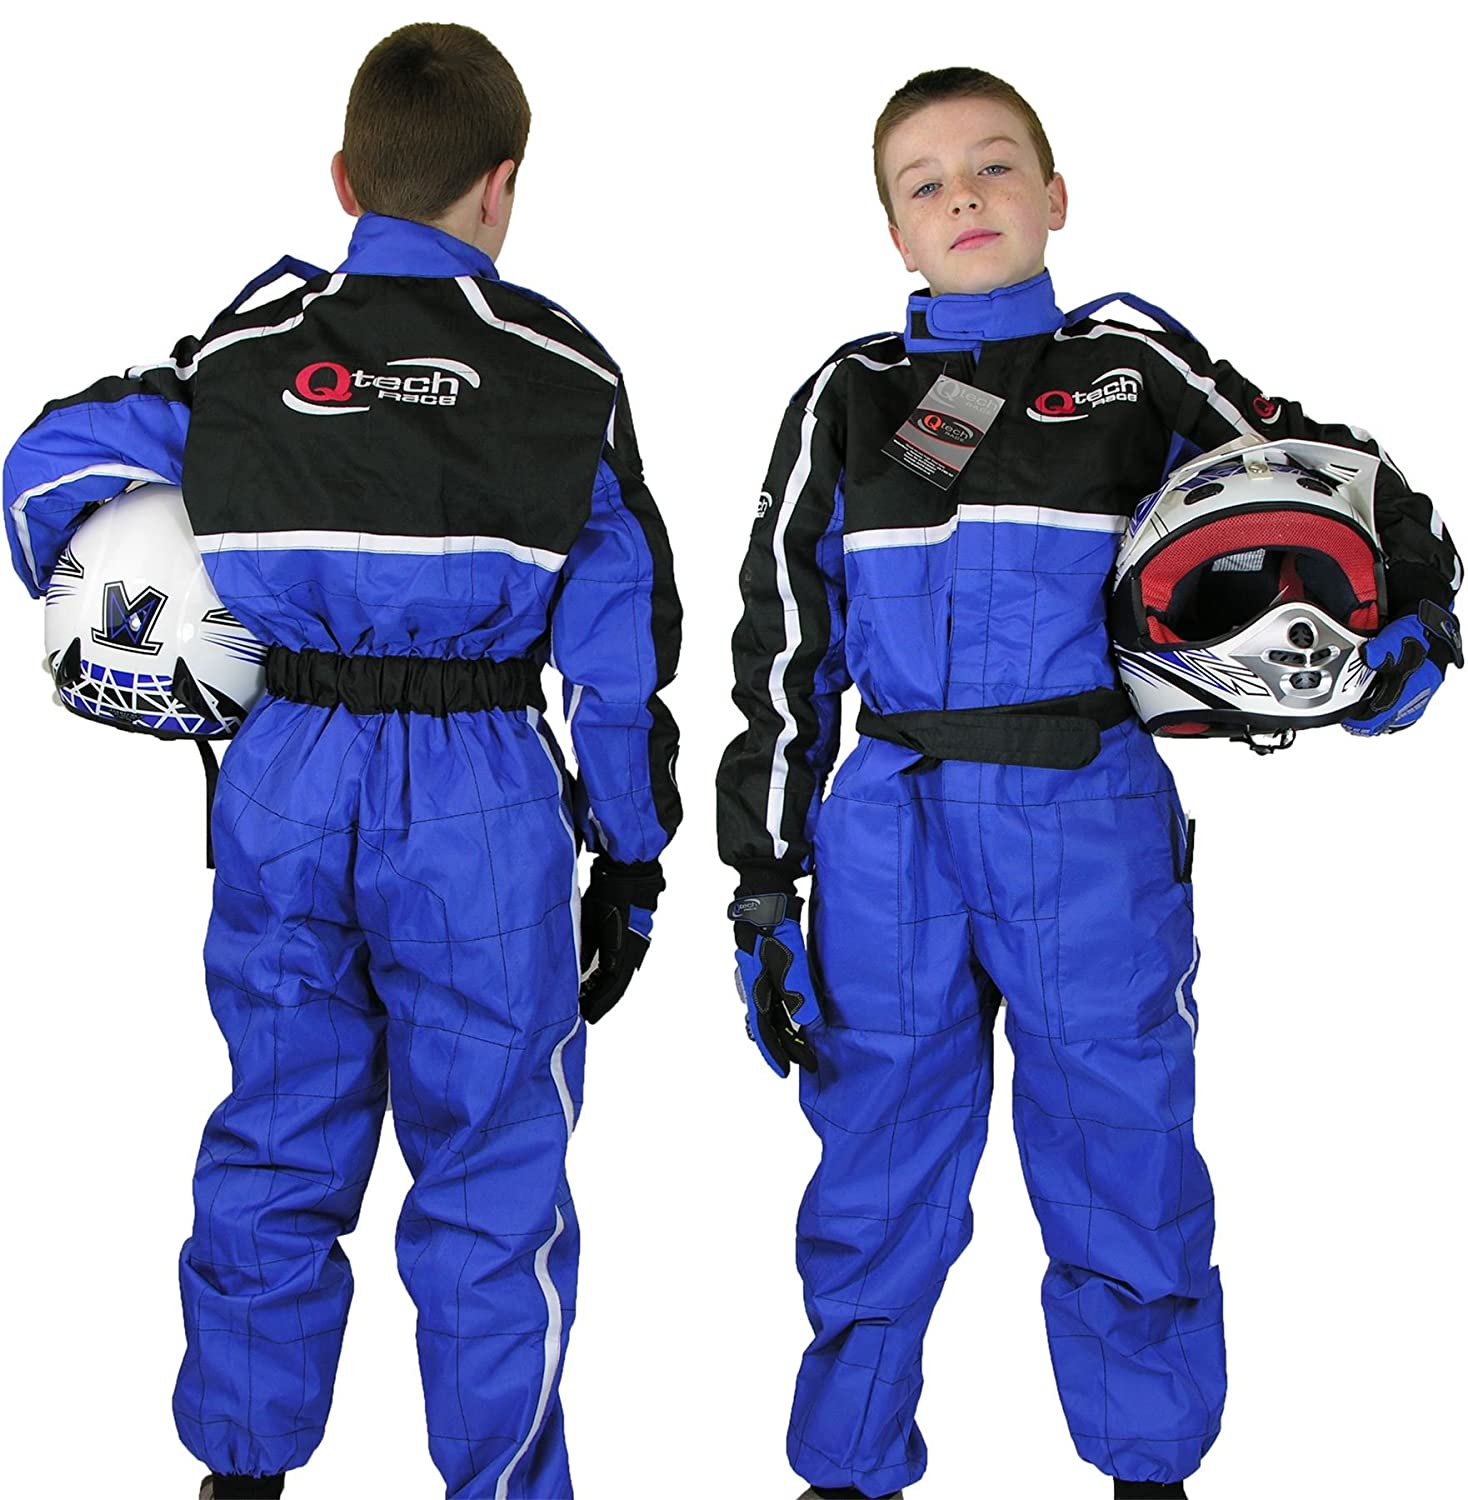 Medium Qtech Childrens Racing Suit Limited Edition for kids Motocross ATV Karting and General Usage with Ankle Cuffs Blue